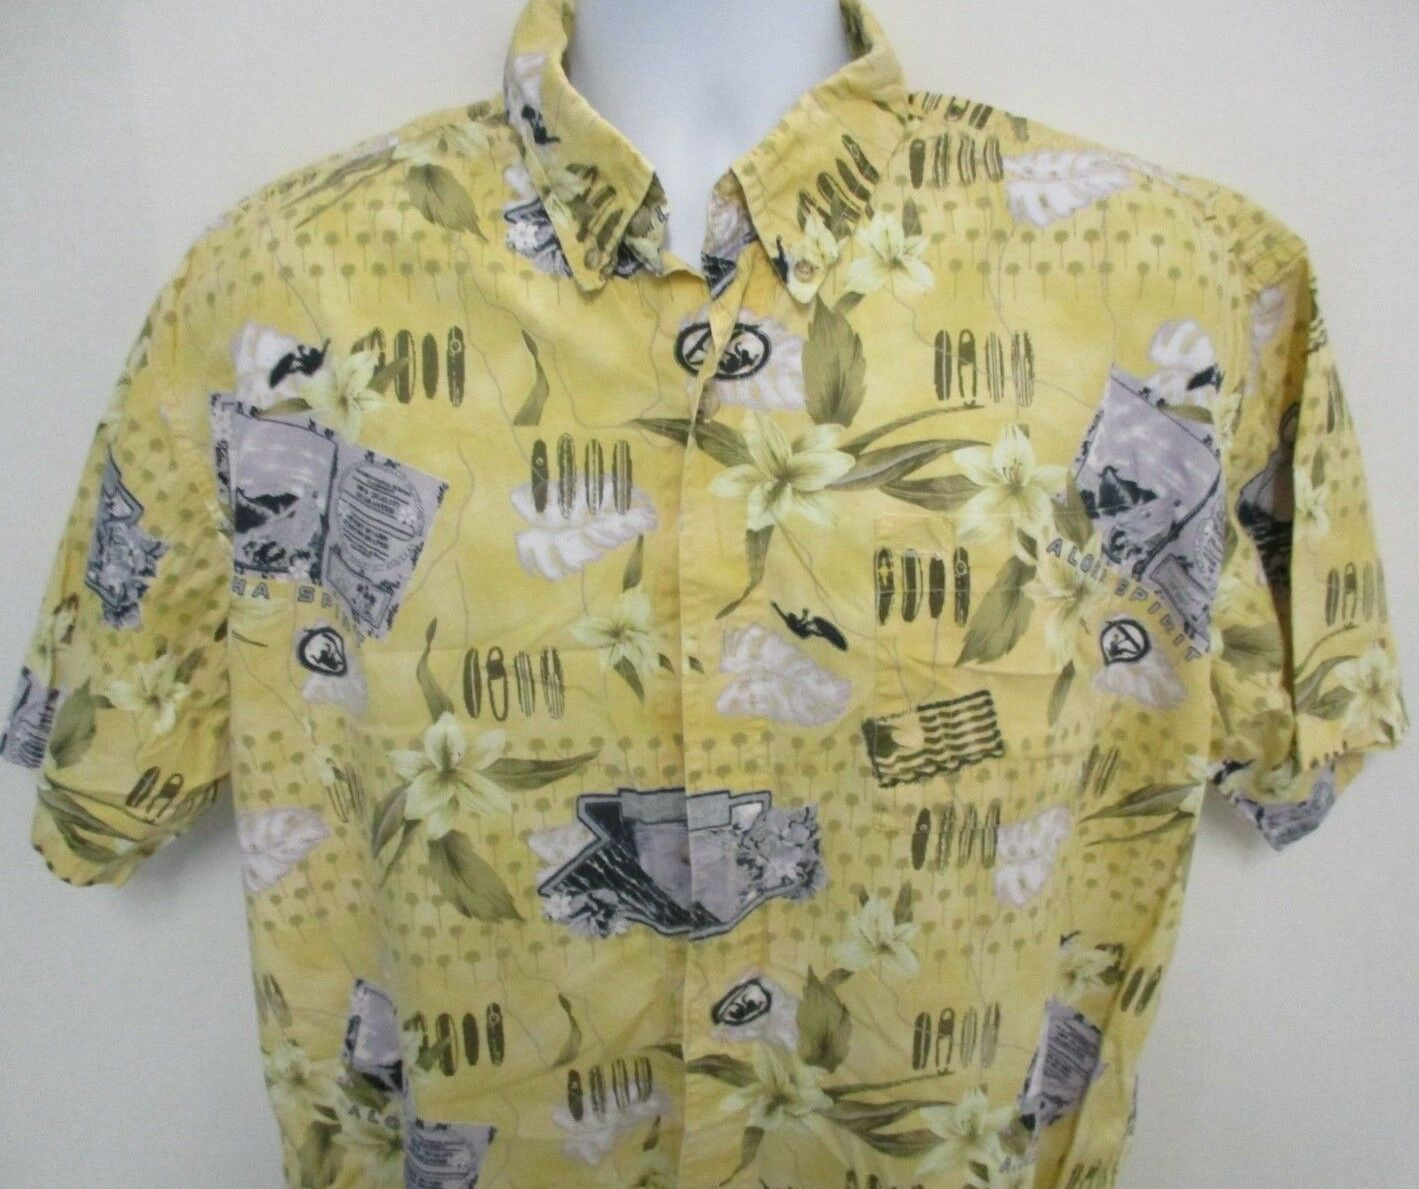 Newport bluee Hawaiian Camp Style Shirt, S S, Large, Yellow w  Surfboards Flowers